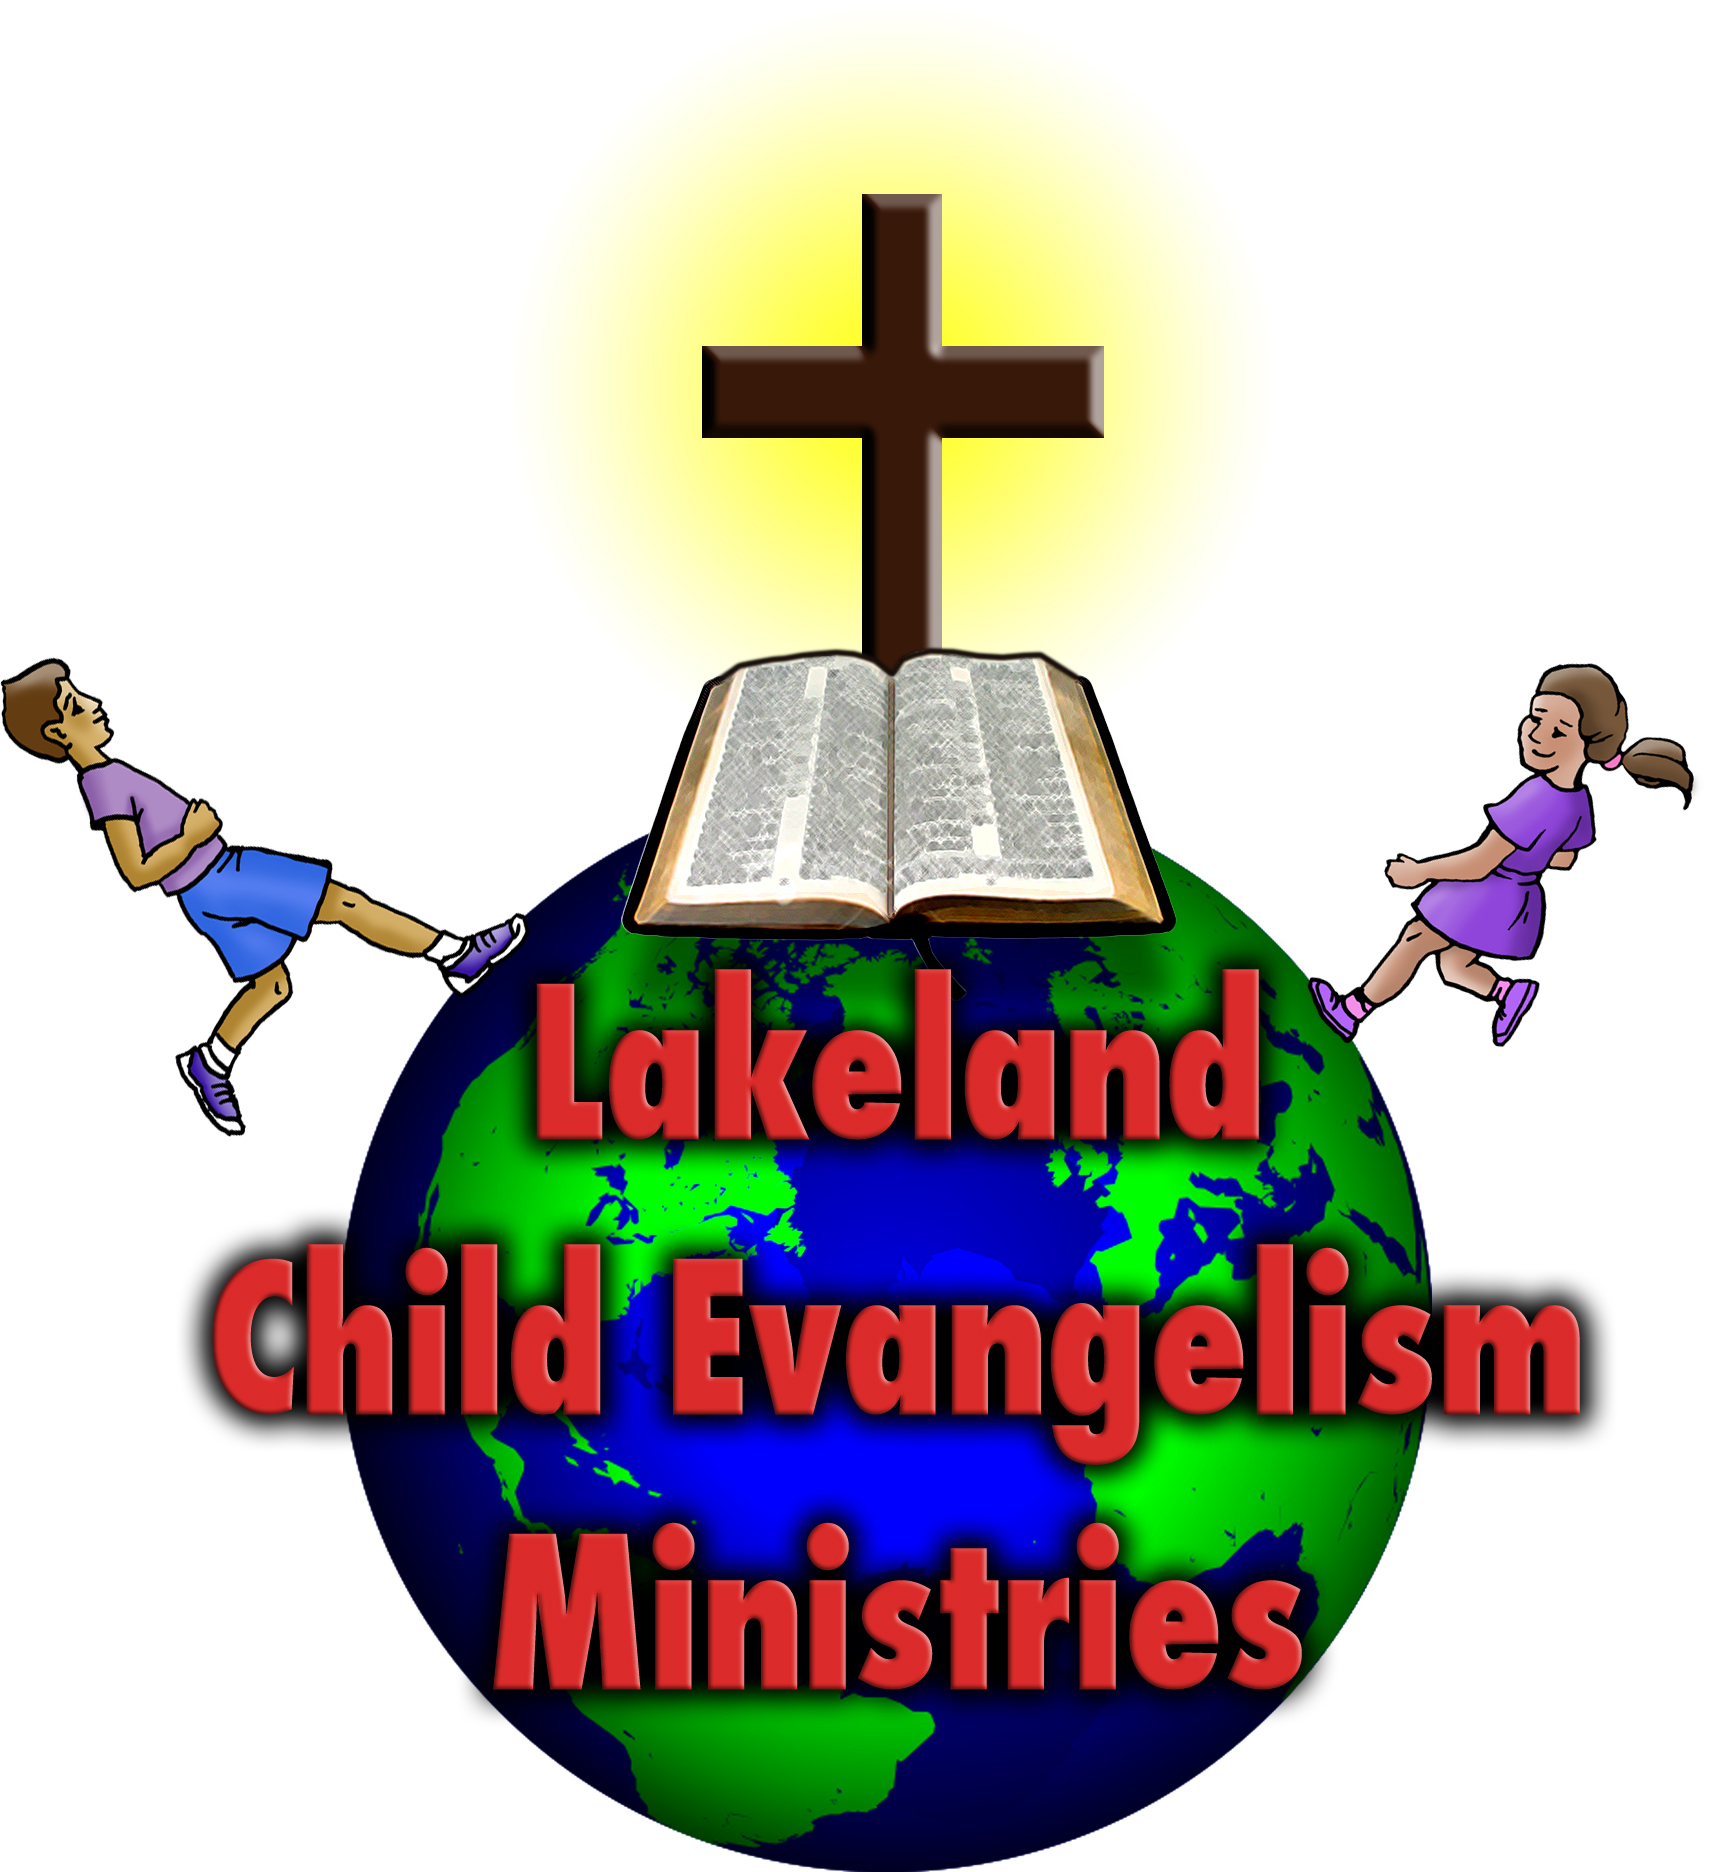 Lakeland Child Evangelism Ministries